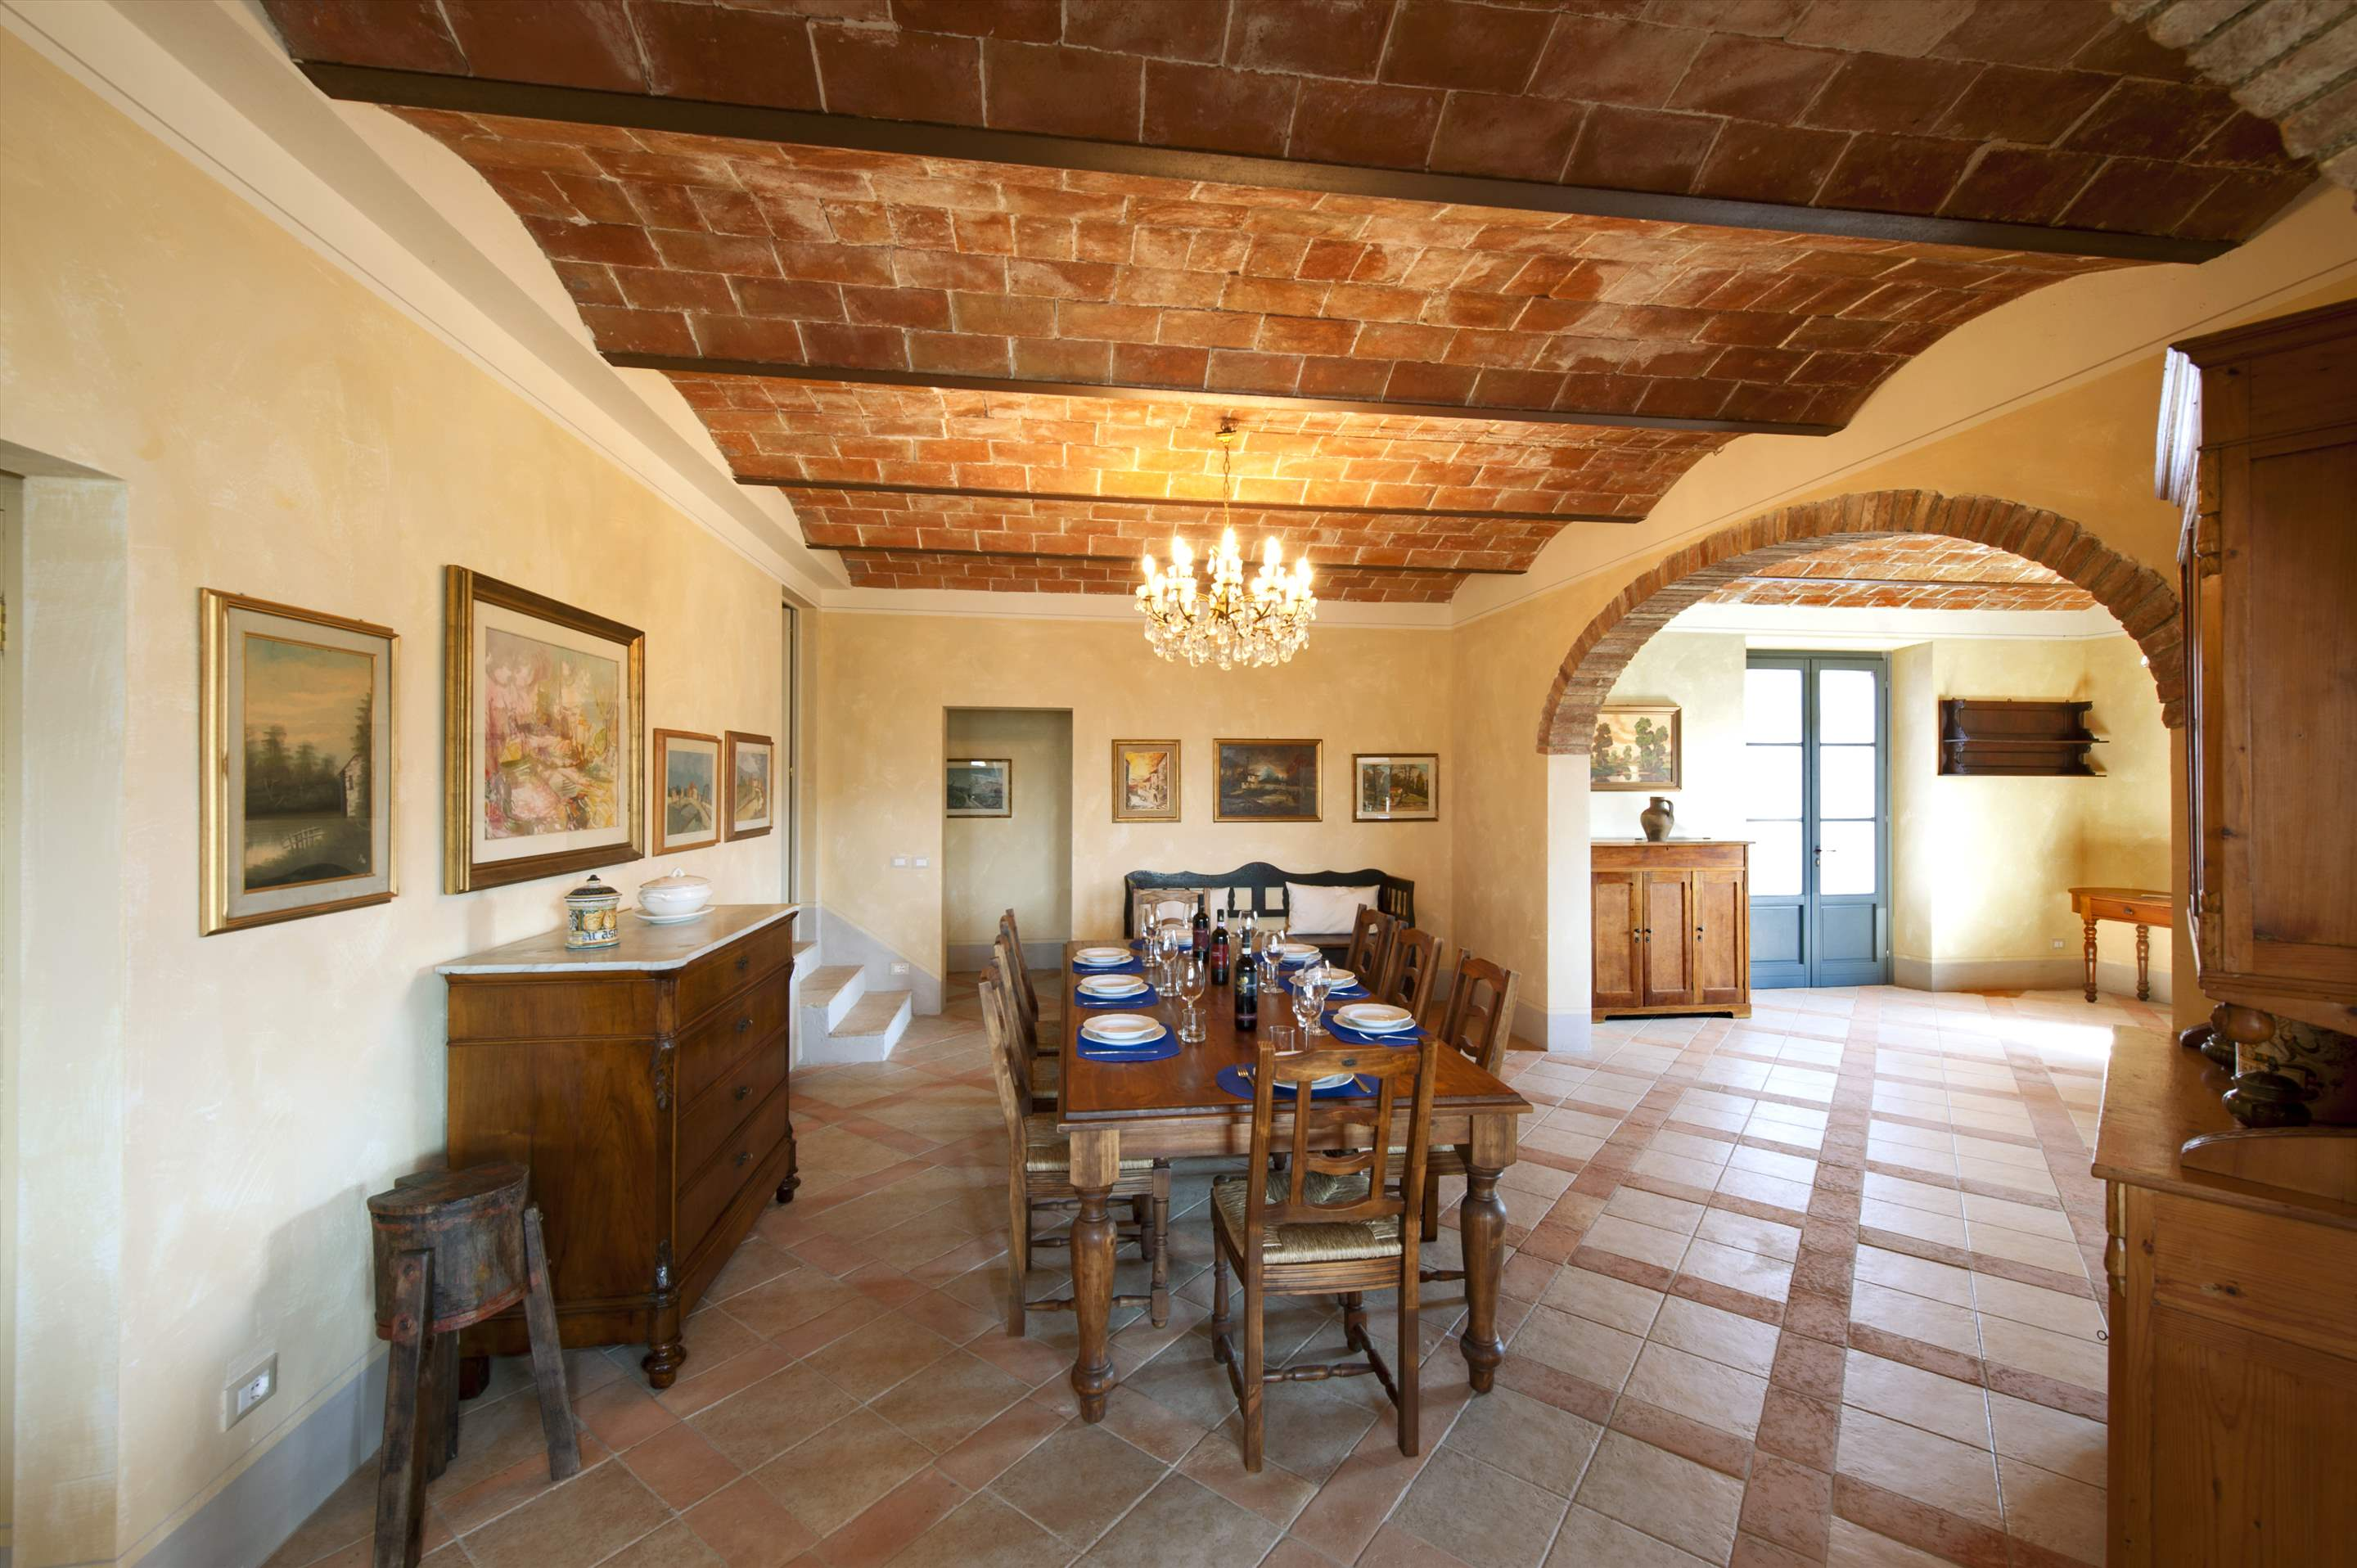 Podere Casacce, Ground Floor, 4 bedroom villa in Tuscany Coast, Tuscany Photo #10